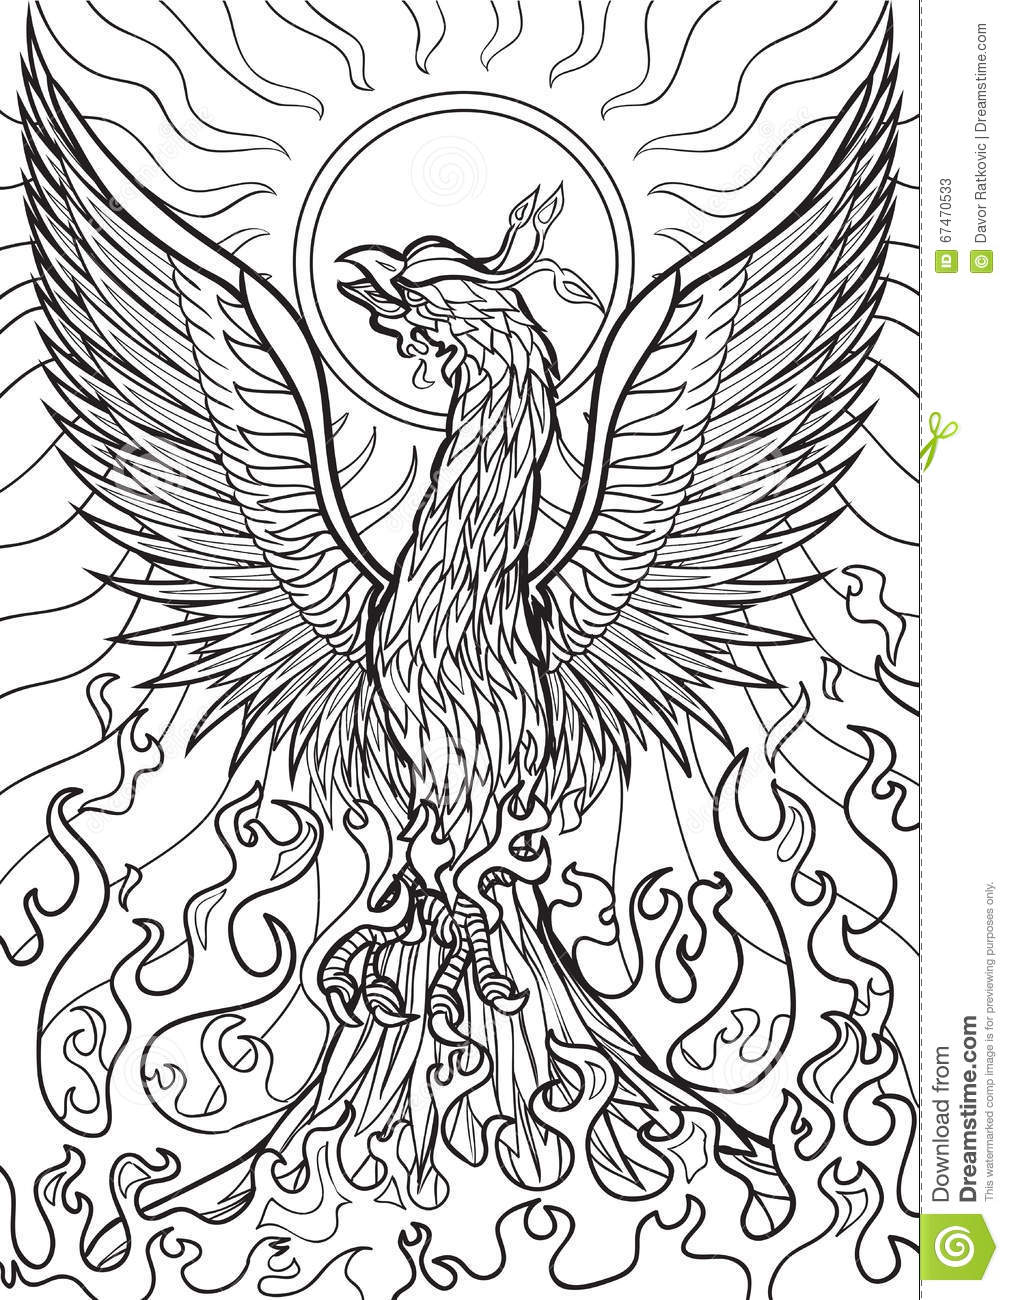 coloring pages of phoenix - photo#22